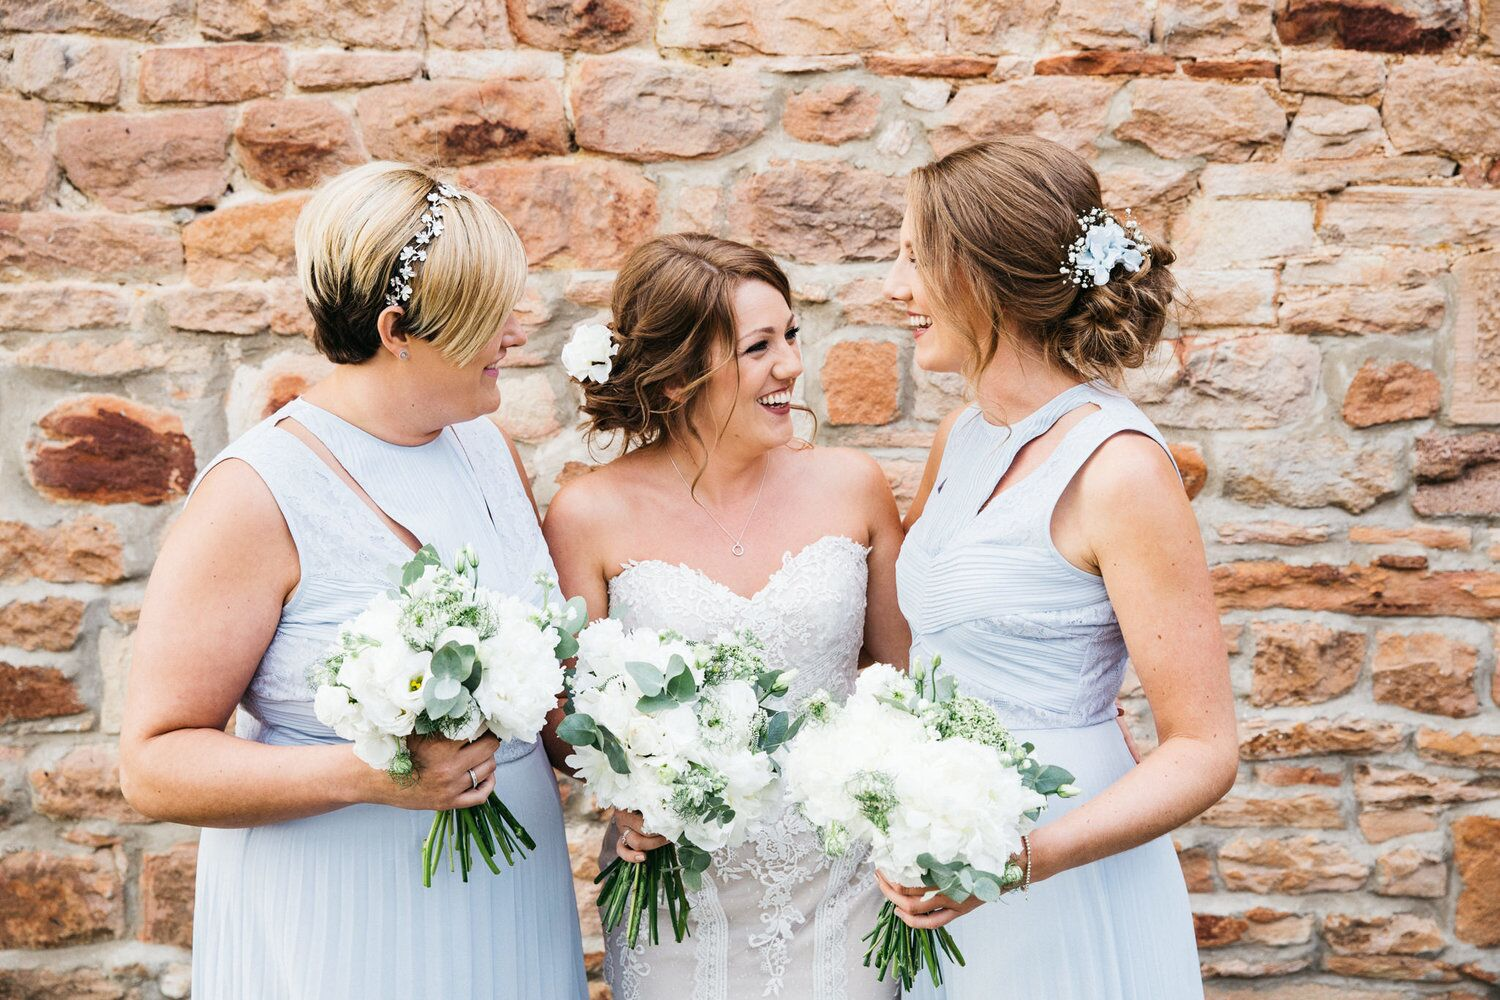 Bride and her bridesmaids smiling